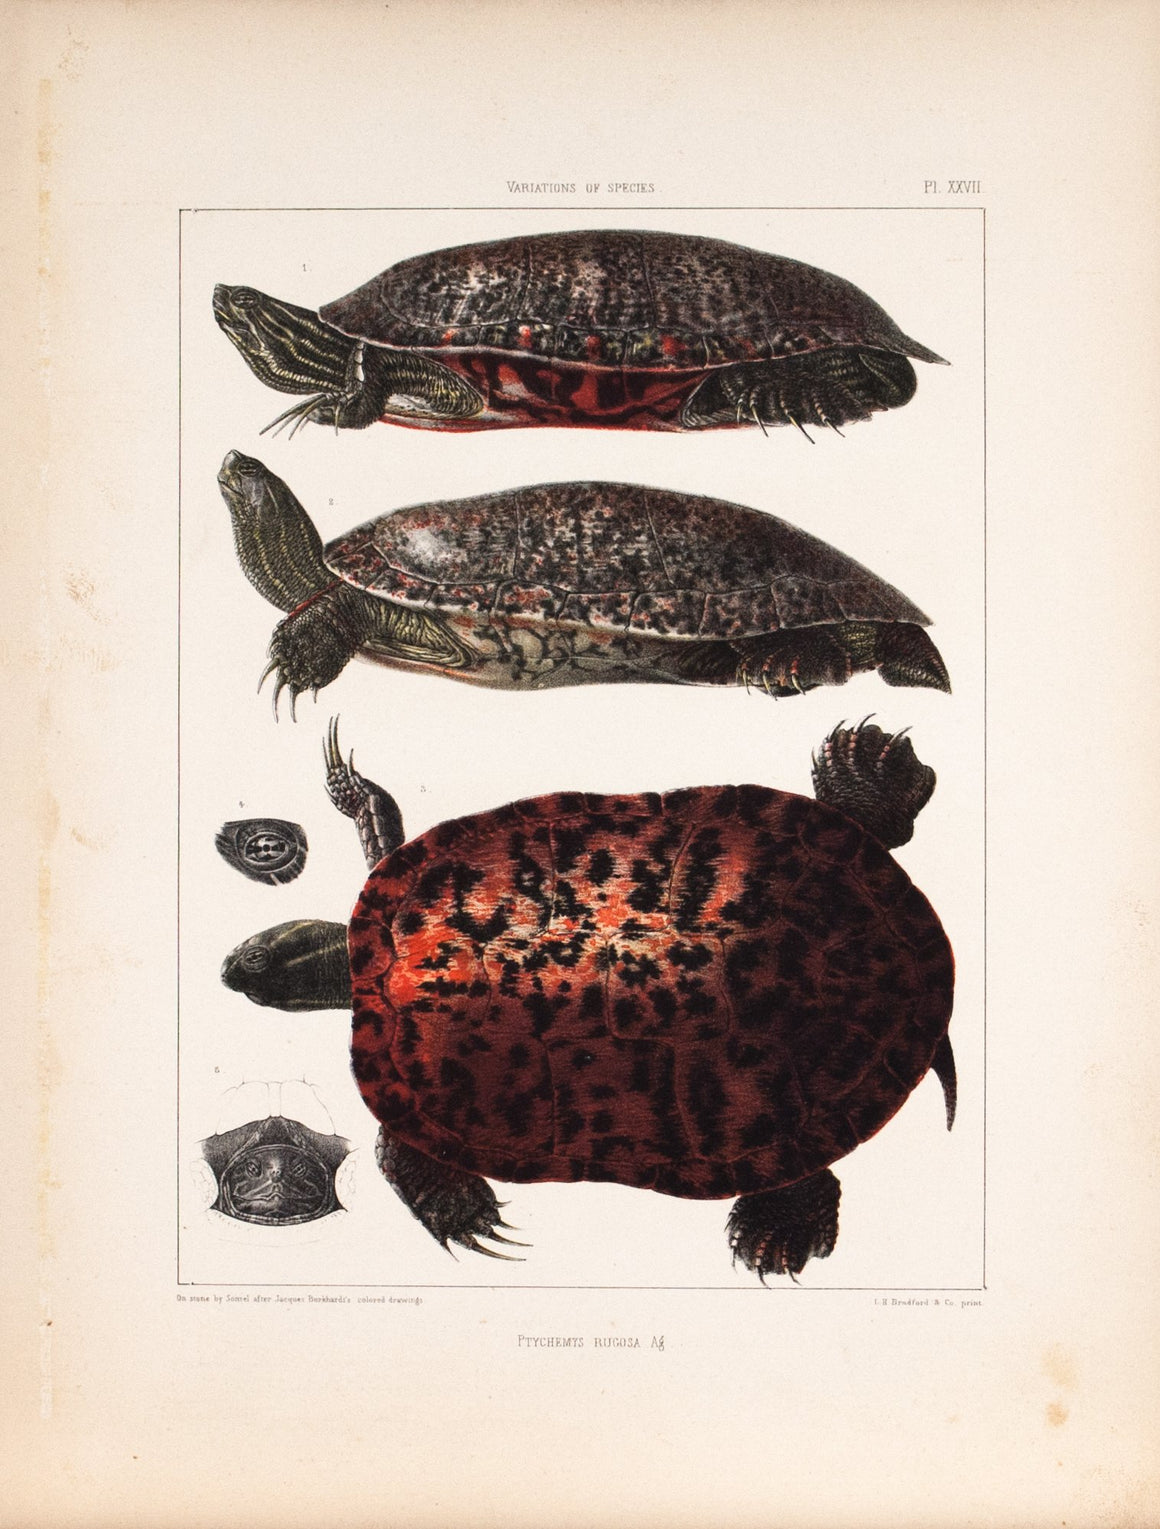 Red-bellied Turtle Embryology of Turtles 1857 Antique Color Zoology Print B